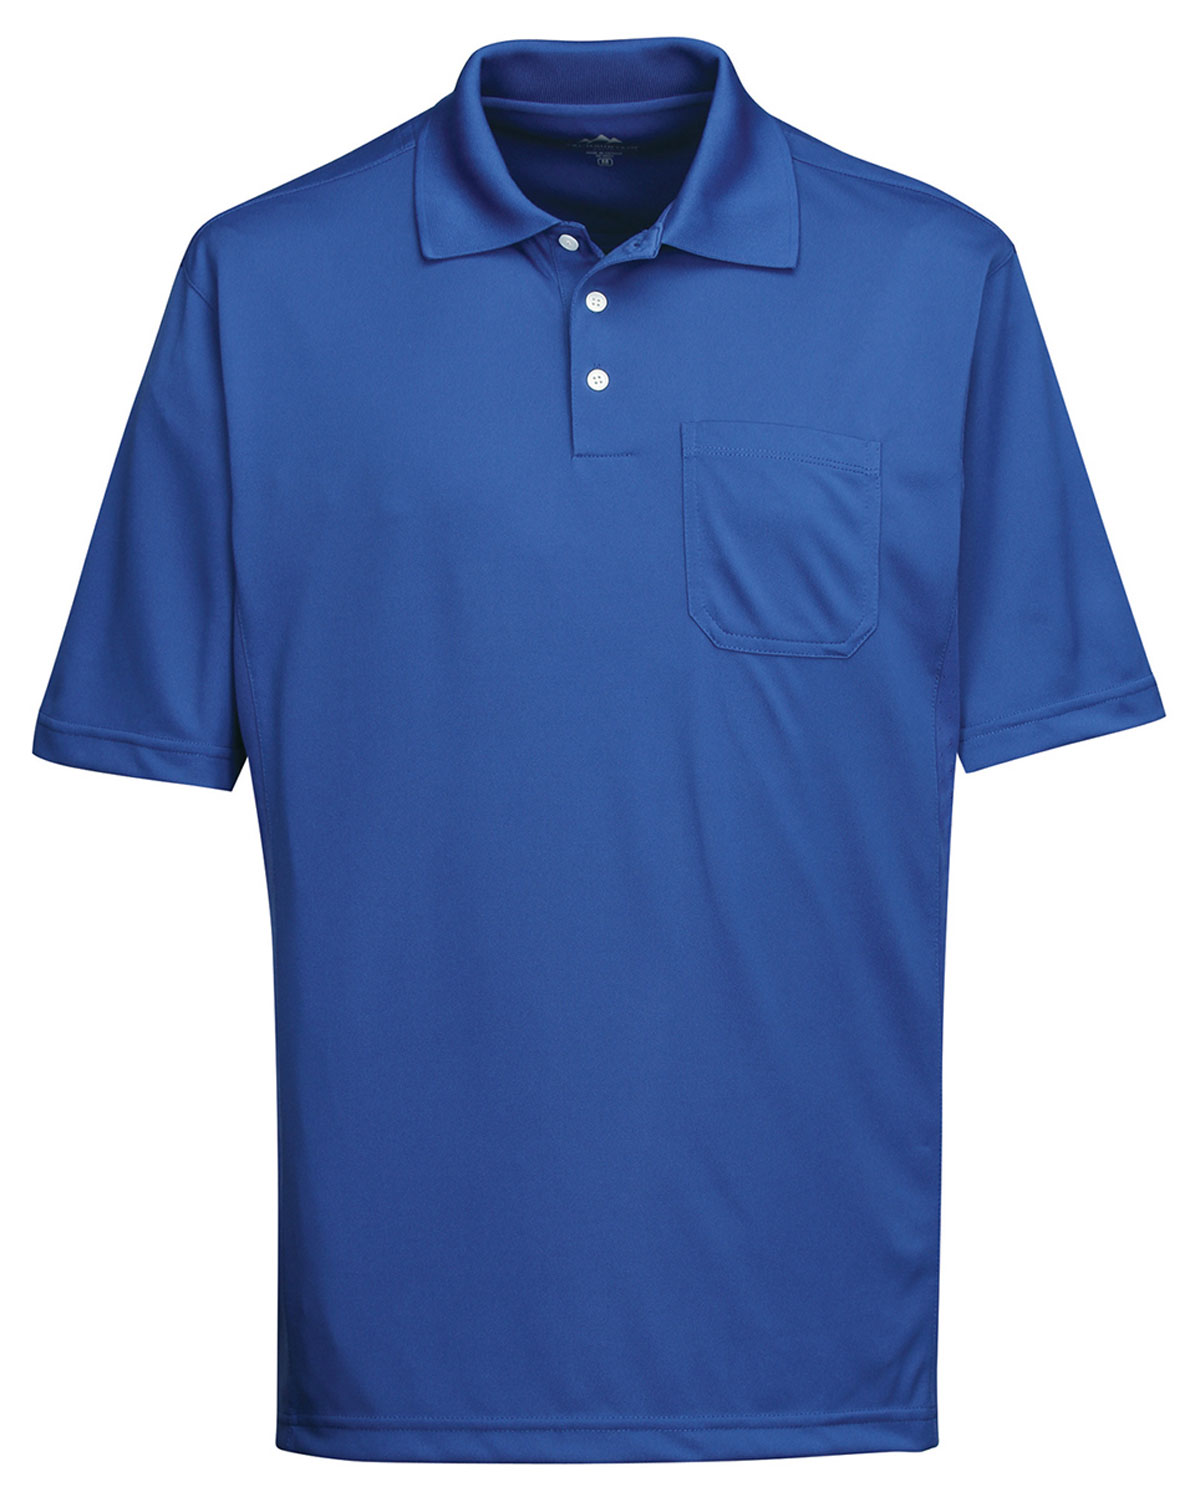 Men 39 s 100 polyester s s pique polo for Big n tall shirts